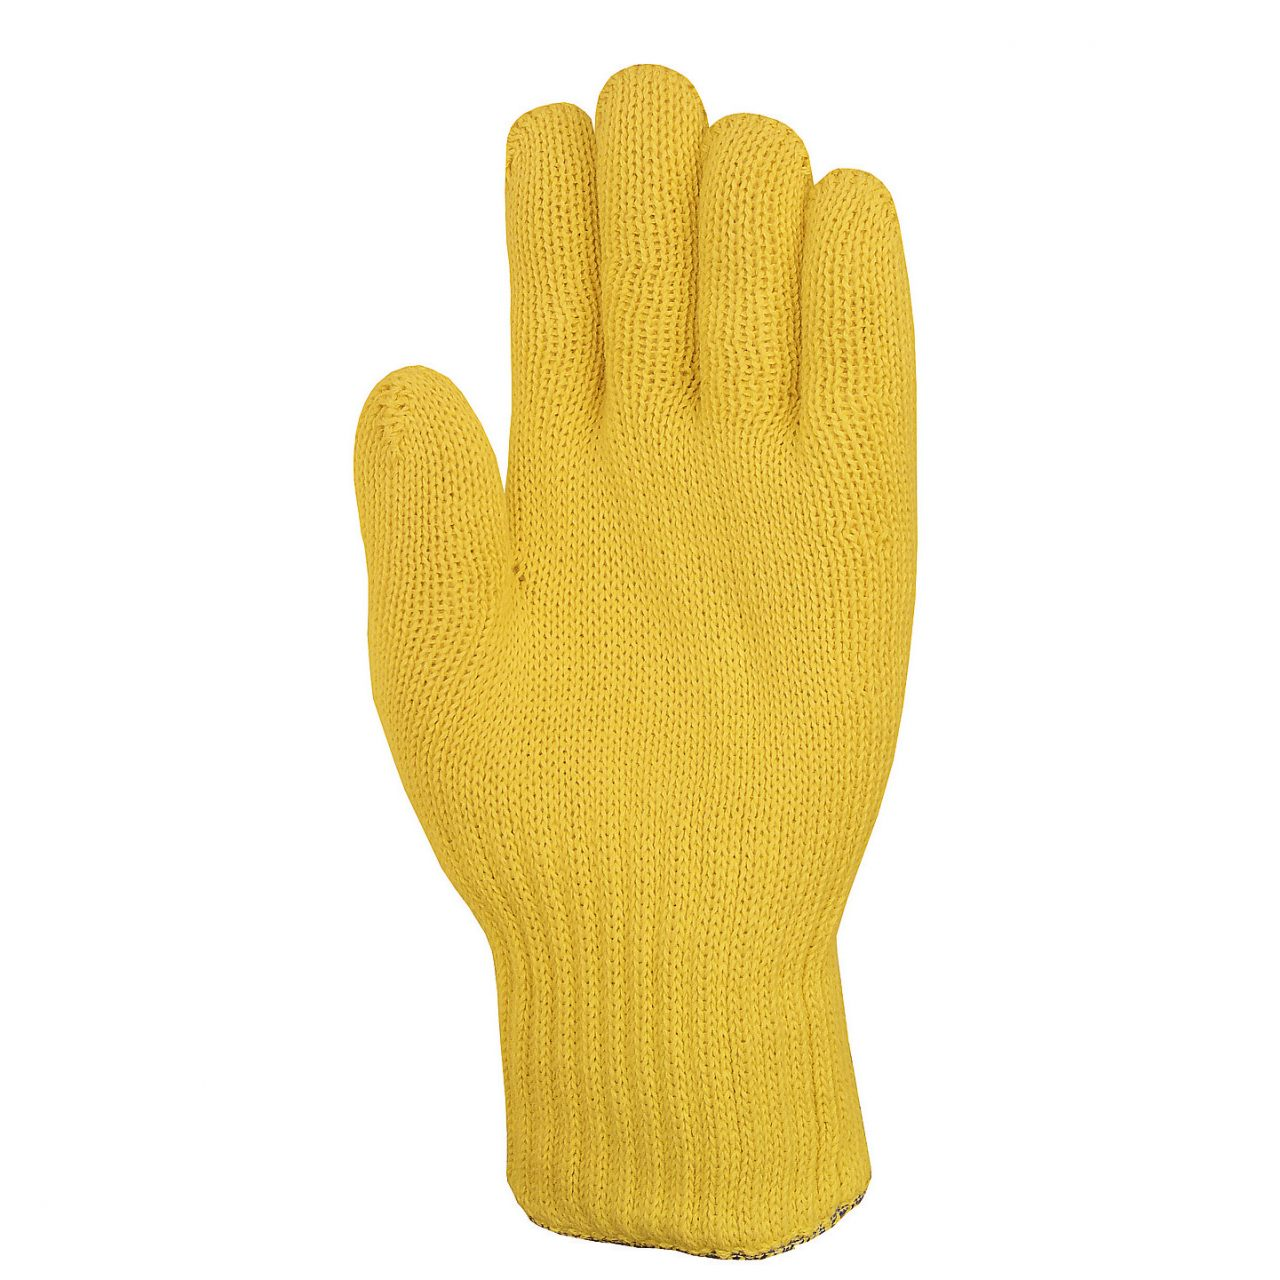 Uvex K-Basic Extra 6658 Kevlar Cut-Resistant Safety Gloves